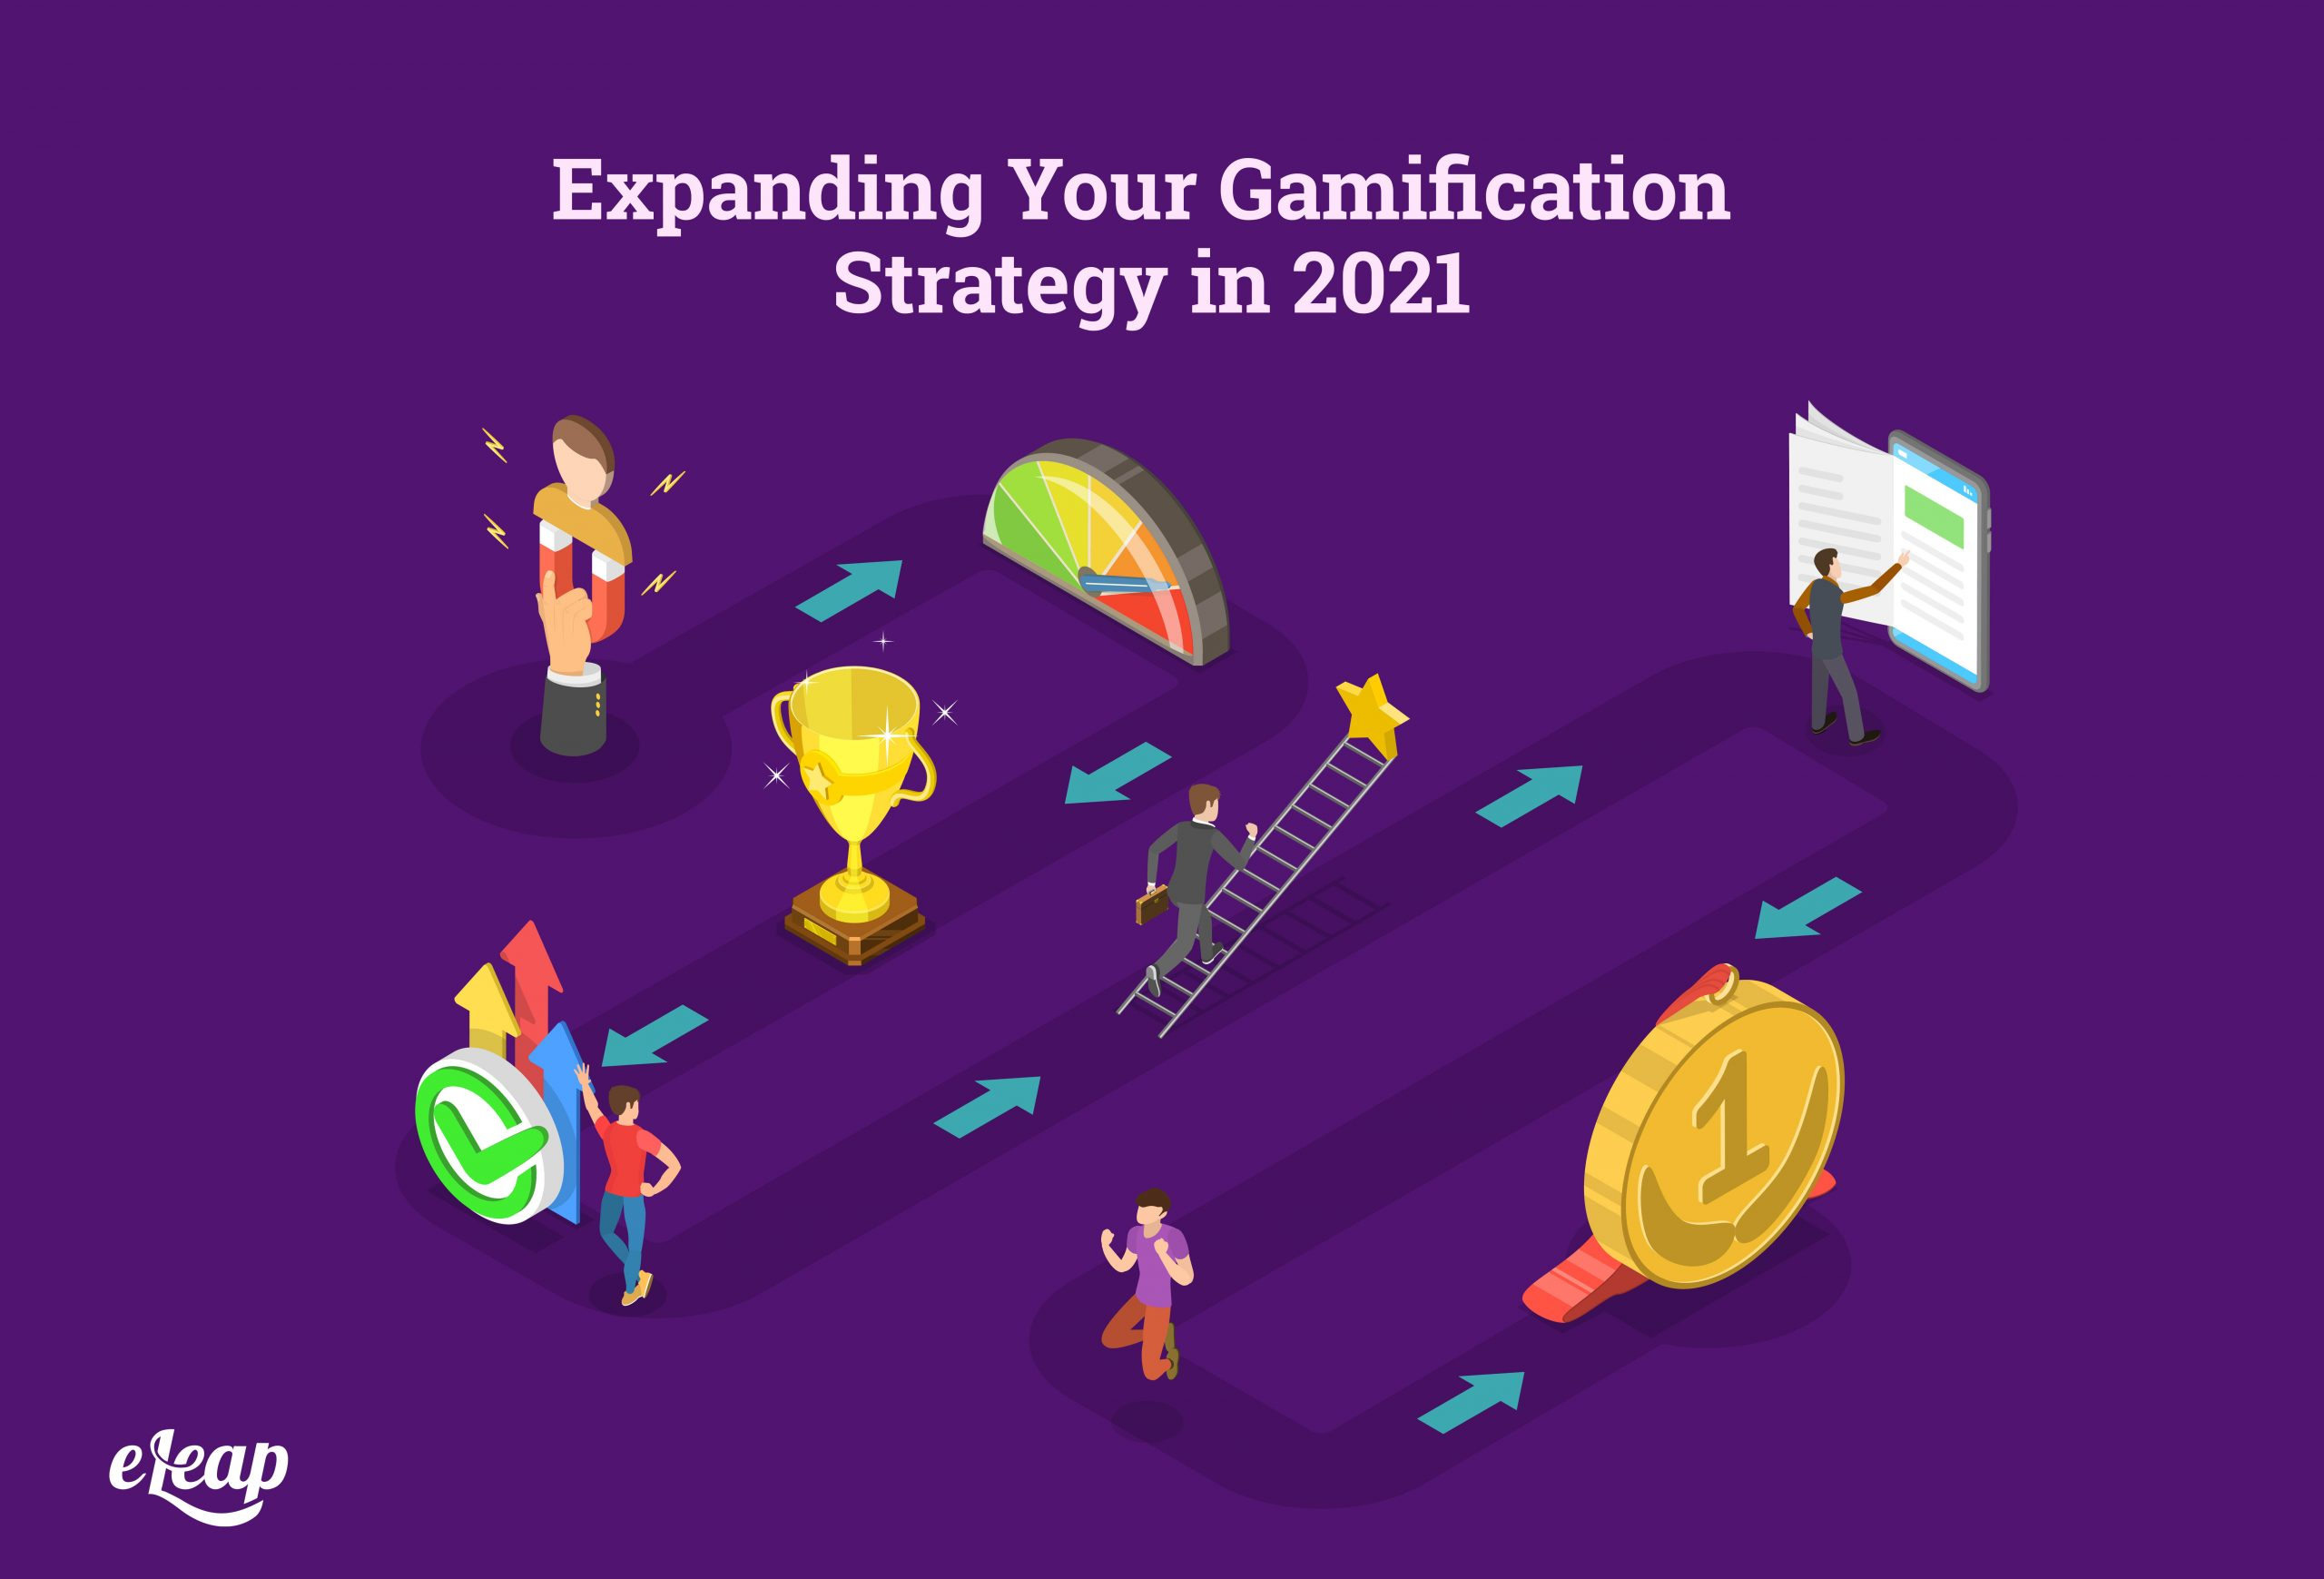 Expanding Your Gamification Strategy in 2021